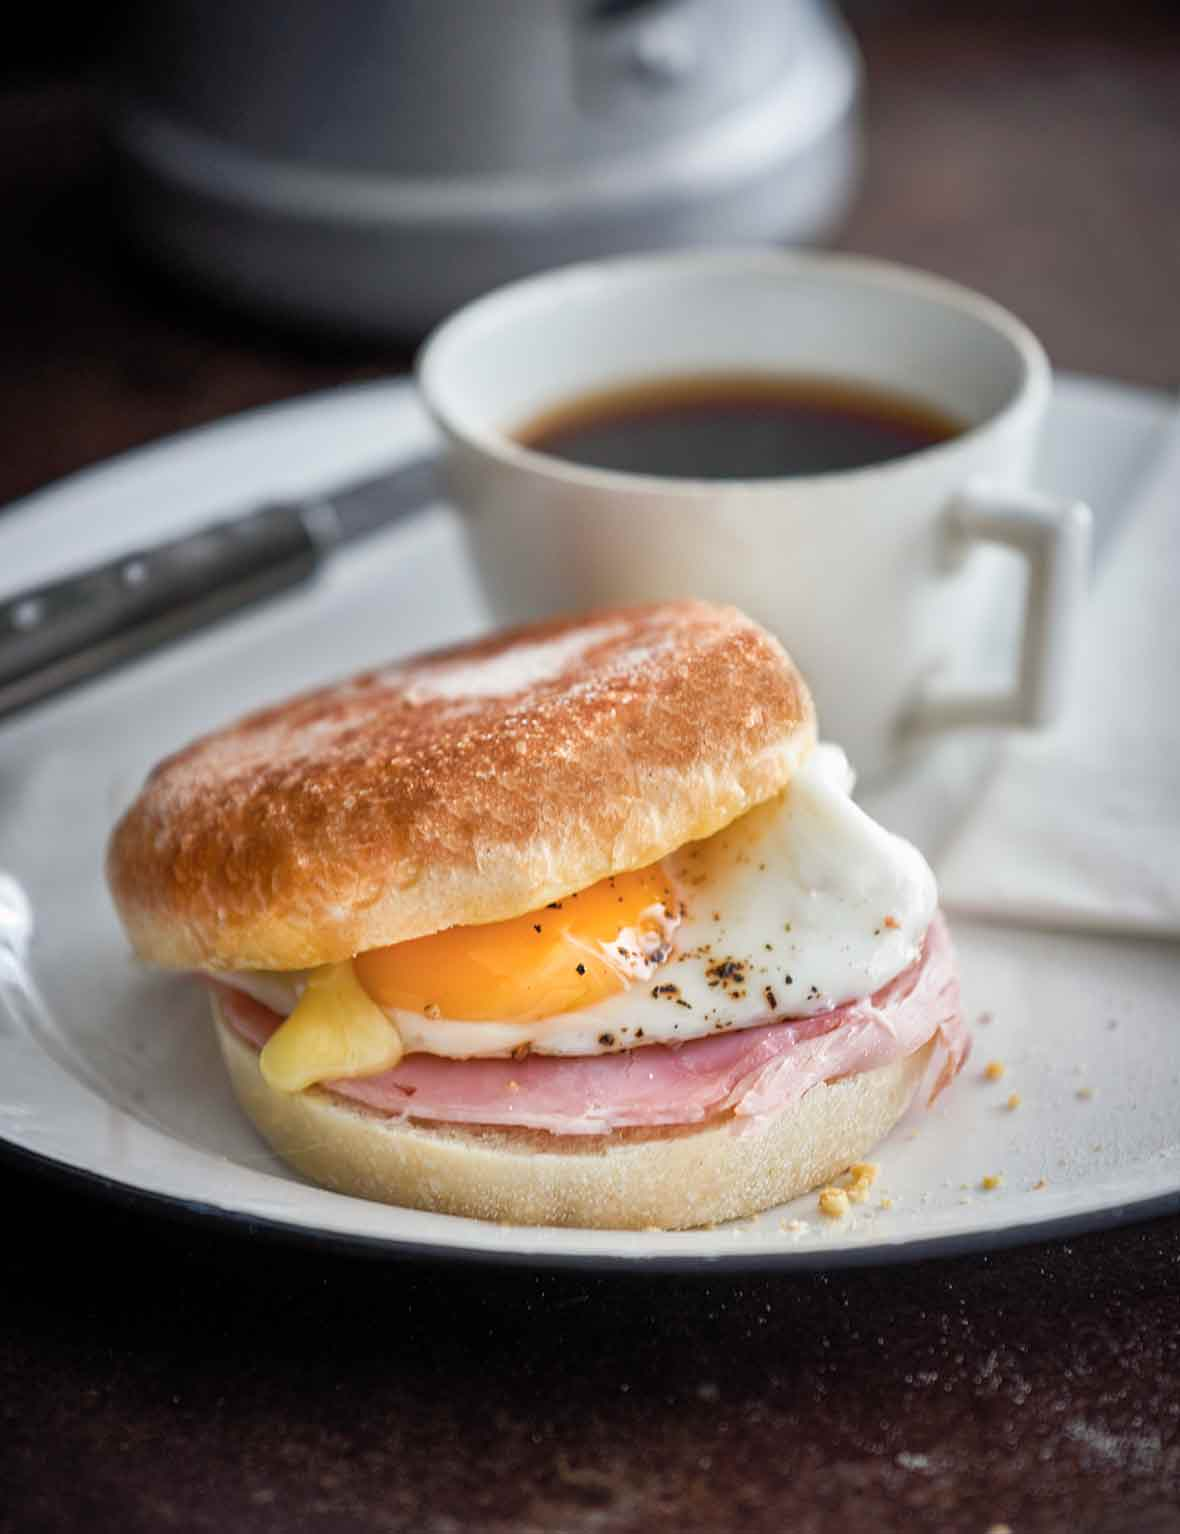 A plate with a breakfast sandwich on a homemade English muffin, a cup of coffee, a knife, and a paper napkin.